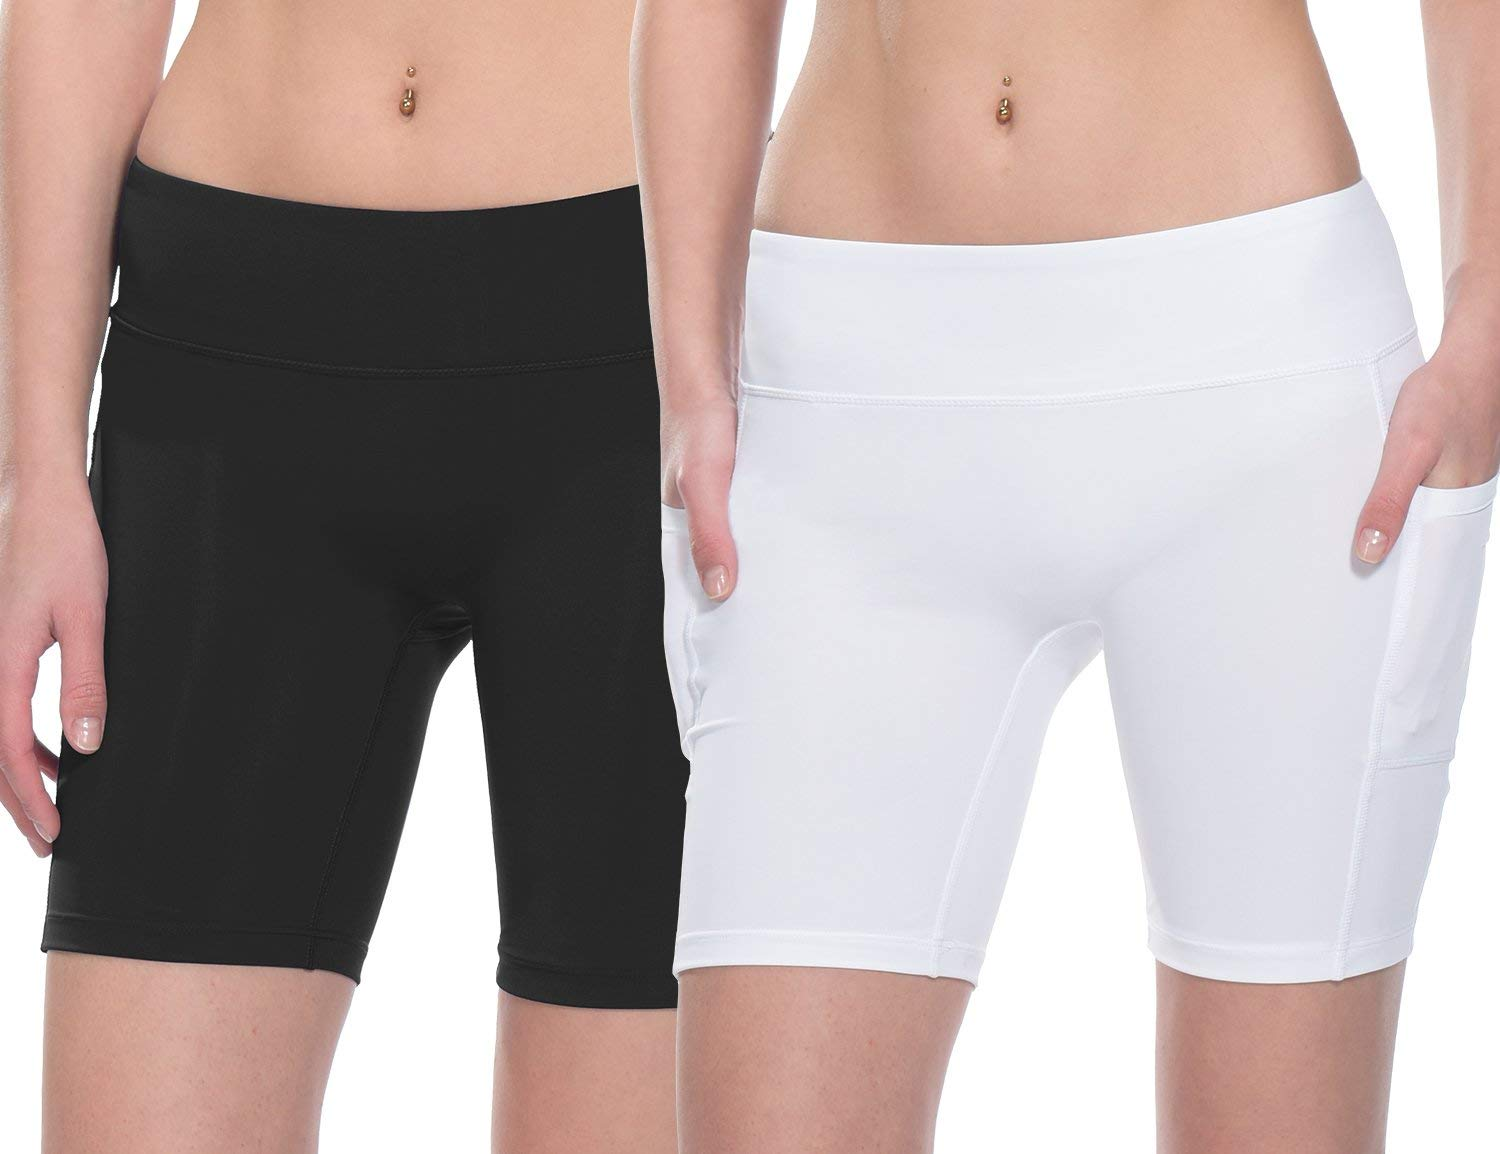 Baleaf Women's 7 Inches Workout Running Shorts Yoga Comprssion Shorts Side Pockets 2 Packs Black/White Size S by Baleaf